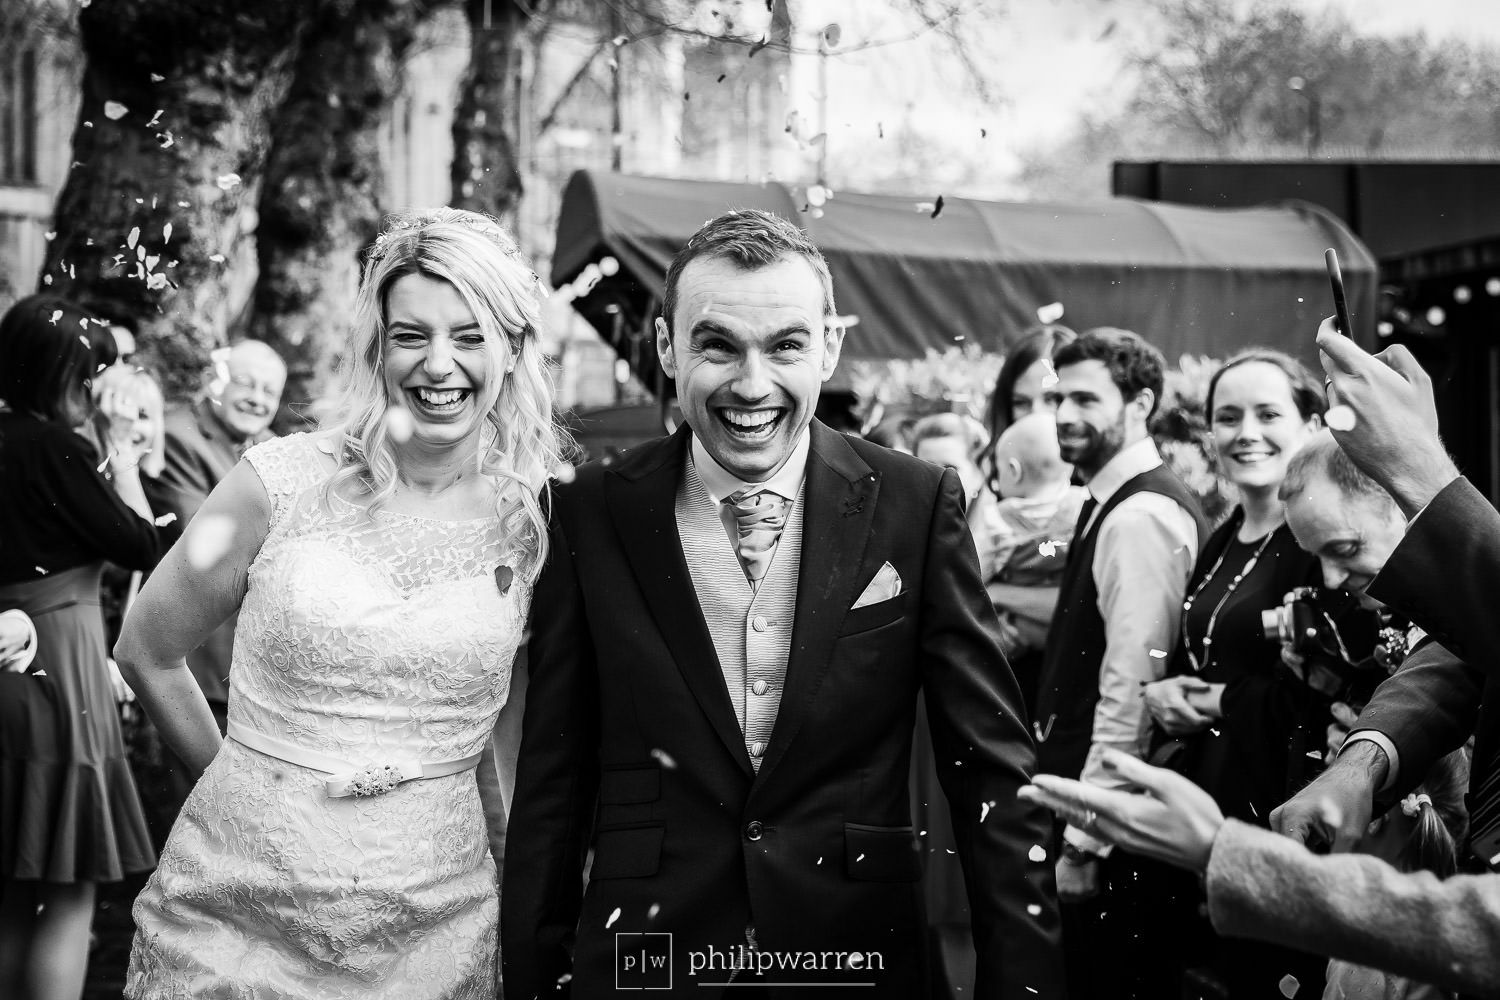 confetting photo of the bride and groom at glassboat brasserie